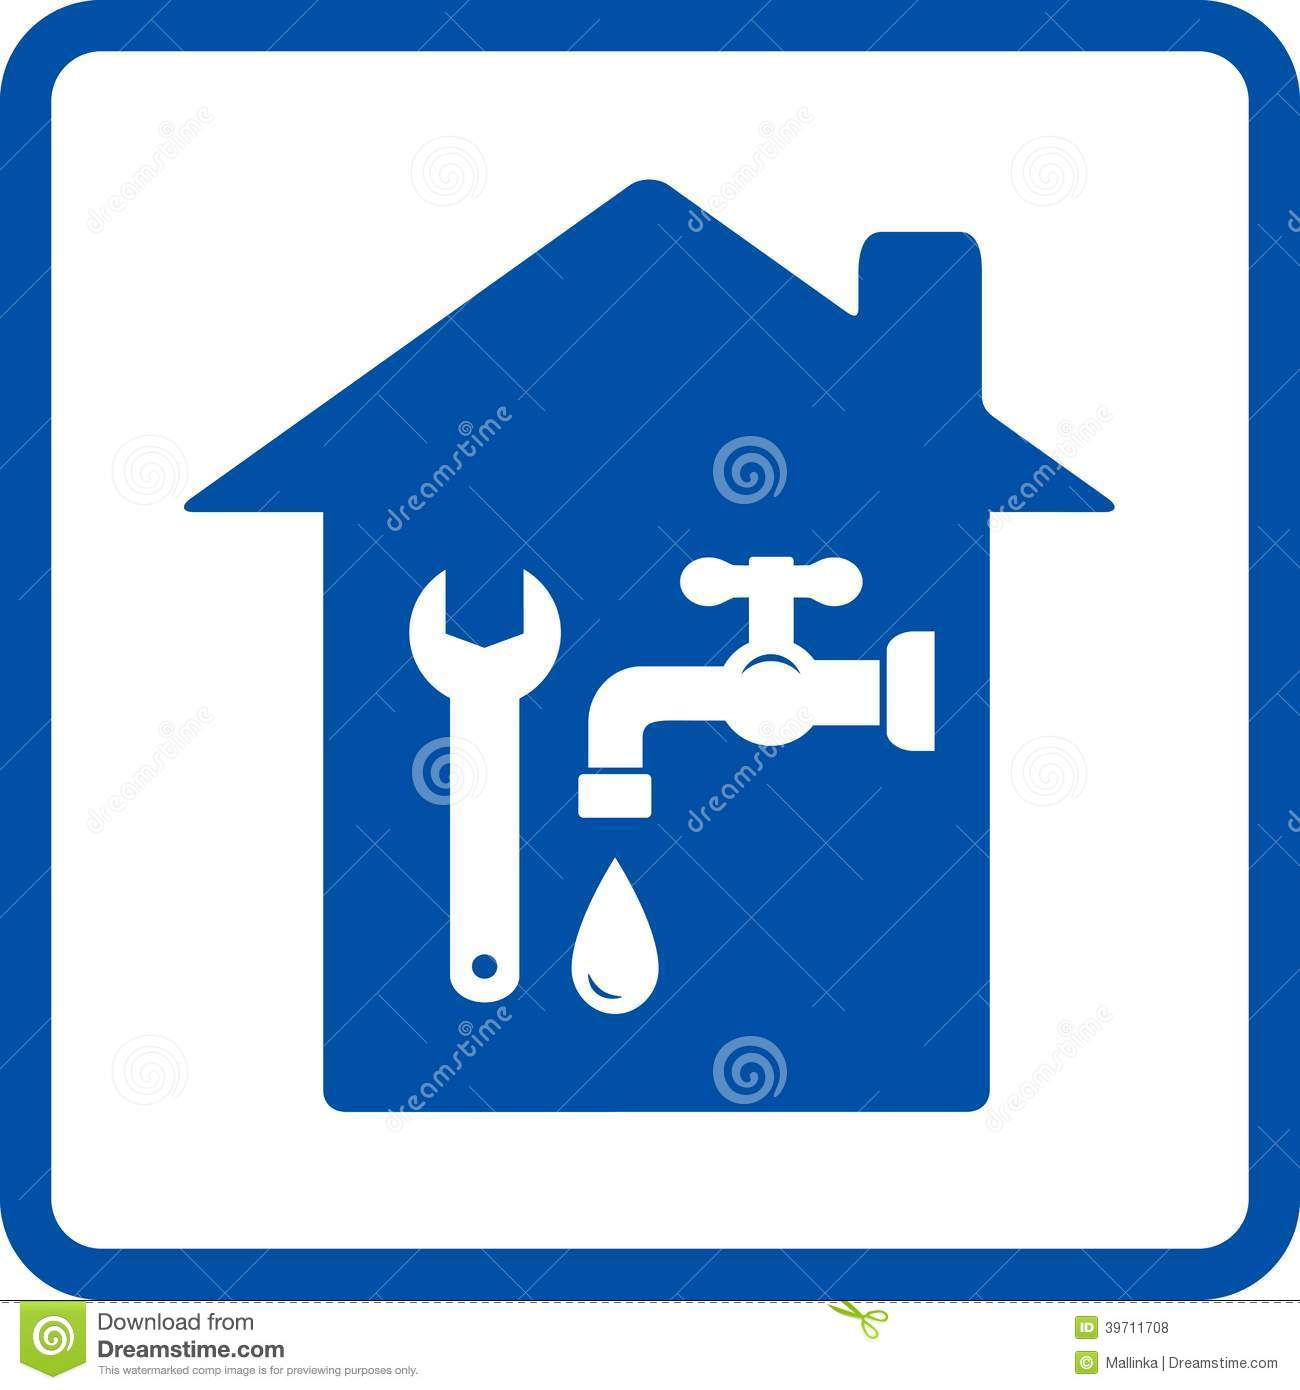 Priority Plumbing furthermore 1262520 Plumbing Services Flyer Vol also Plumbing Silhouette Cliparts besides Dia Del Electricista Venezolano El 22 De Septiembre likewise 3d Power Button Vector. on plumbing logos for business